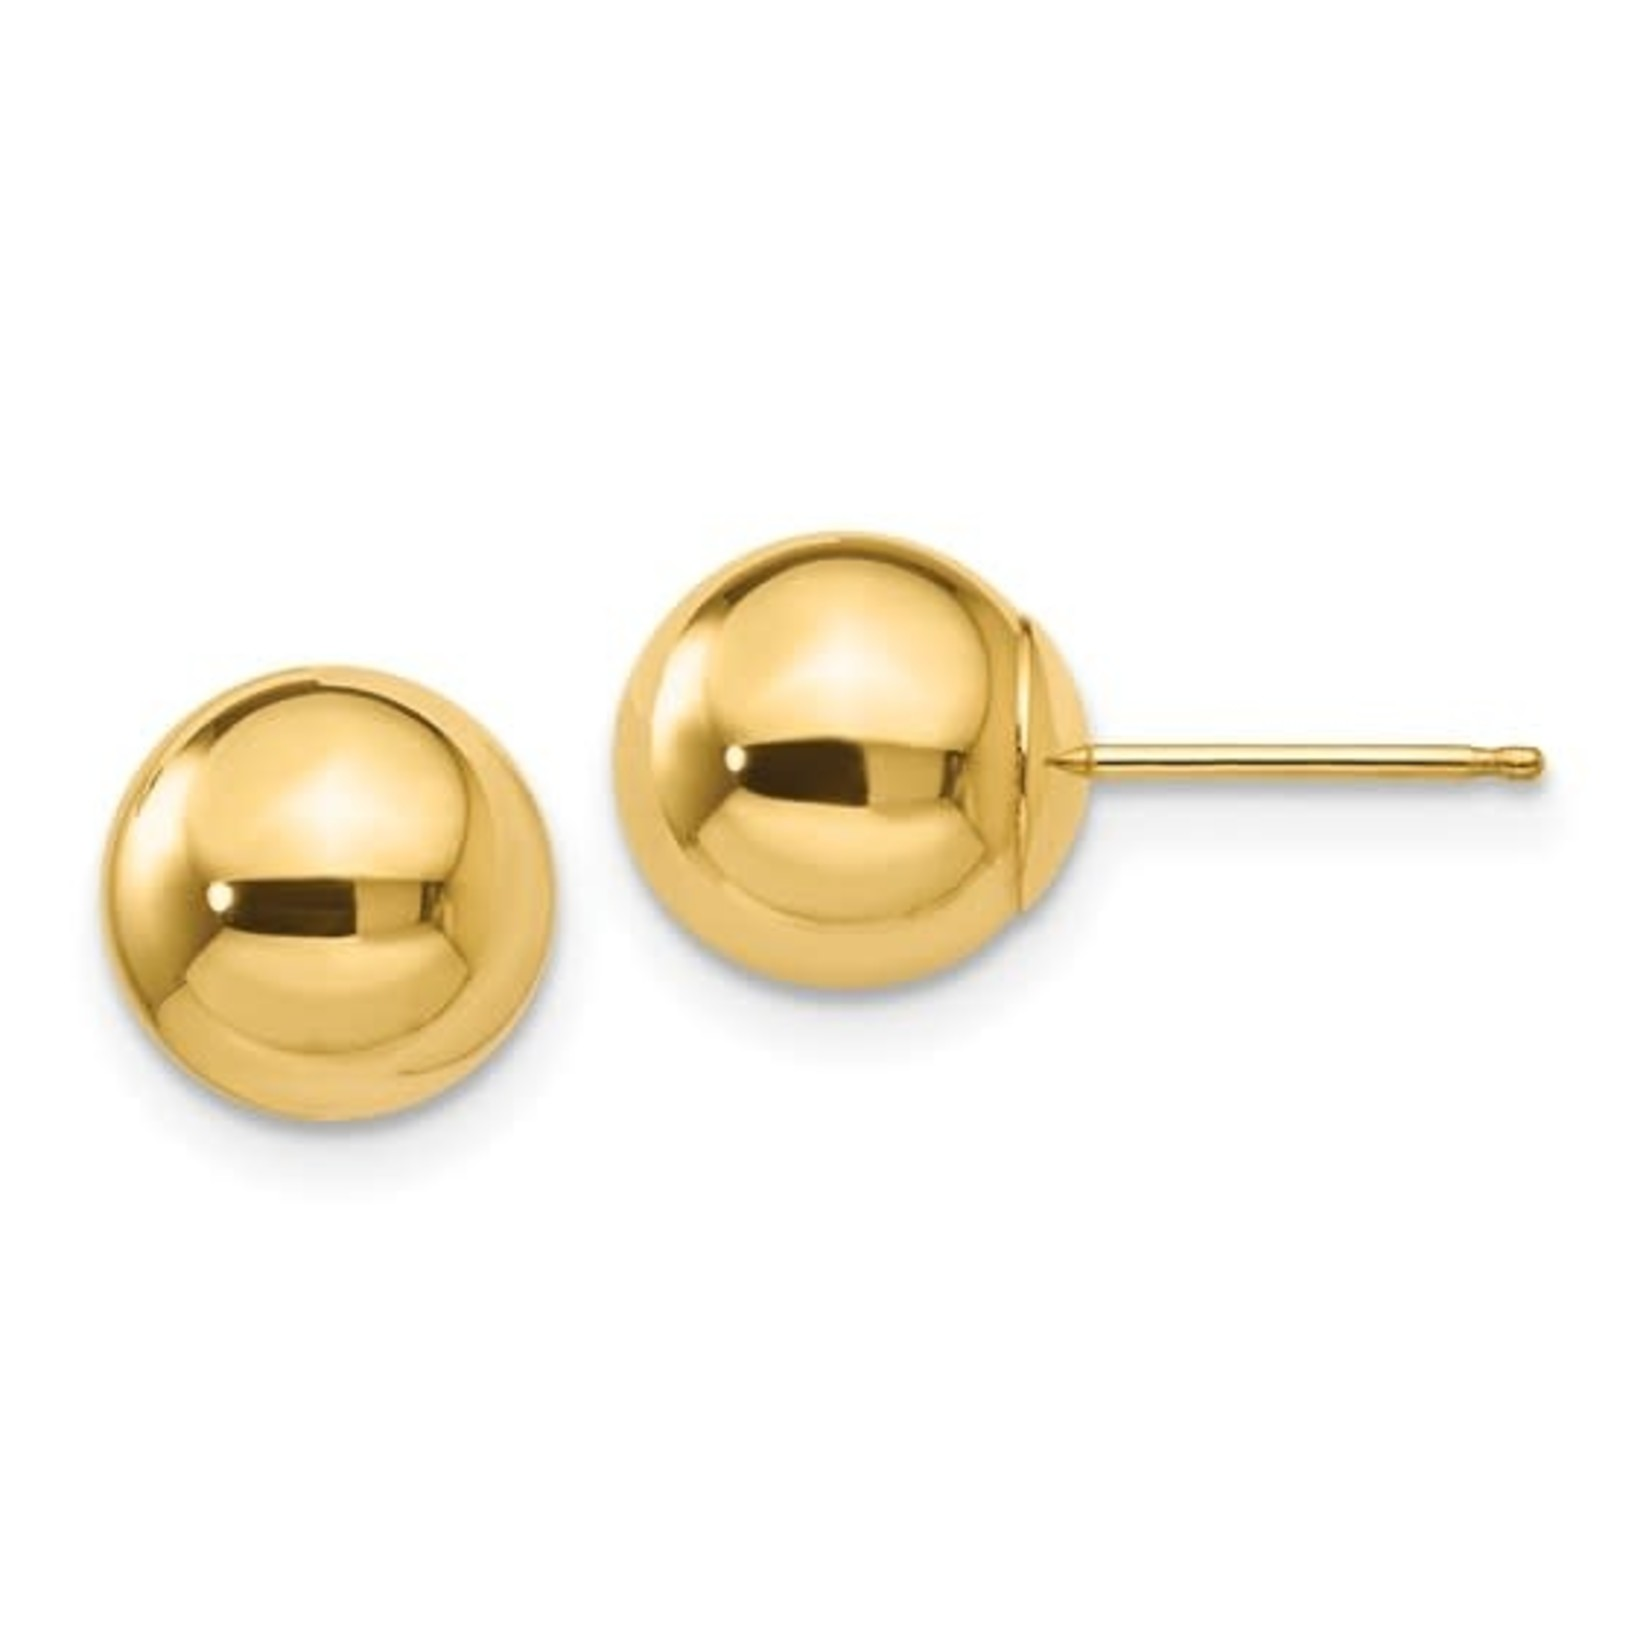 14KY Gold 8mm Round Ball Stud Earrings